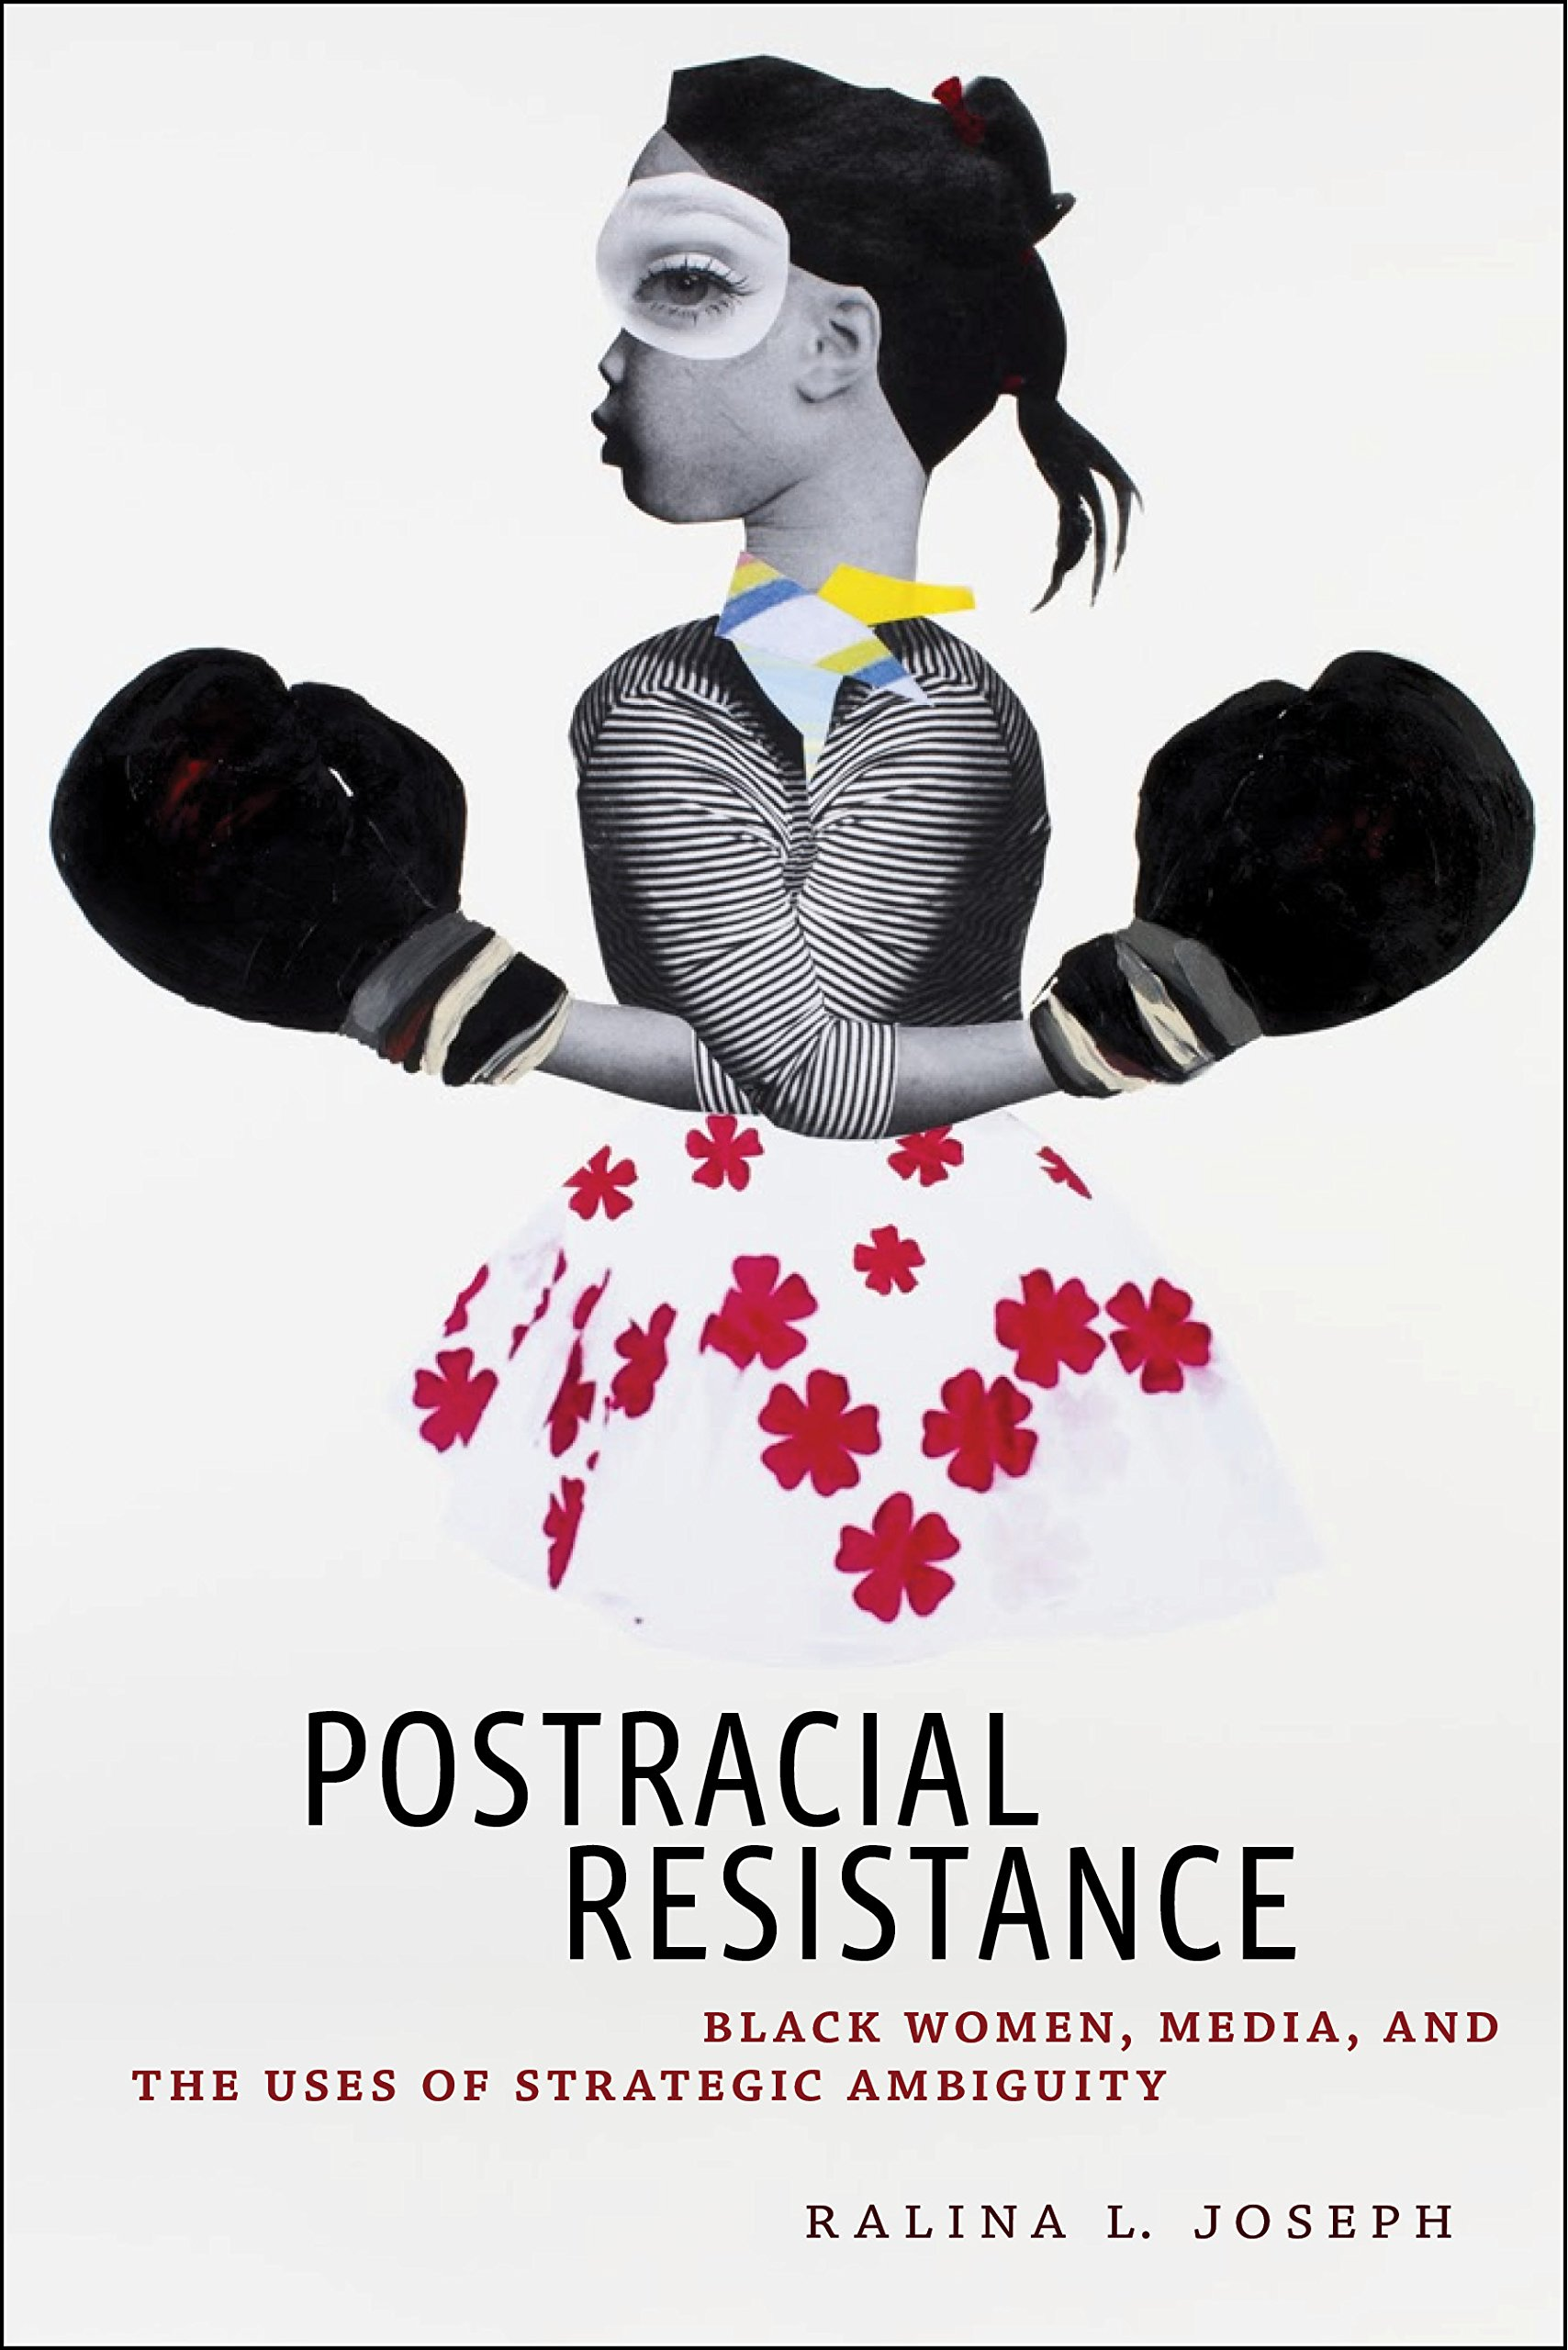 "Postracial Resistance: Black Women, Media, and The Uses of Strategic Ambiguity - BY Ralina L. Joseph NEW YORK UNIVERSITY PRESS October 2018Postracial Resistance explores how African American women celebrities, cultural producers, and audiences employ postracial discourse—the notion that race and race-based discrimination are over and no longer affect people's everyday lives—to refute postracialism itself. In a world where they're often written off as stereotypical ""Angry Black Women,"" Joseph offers that some Black women in media use ""strategic ambiguity,"" deploying the failures of post-racial discourse to name racism and thus resist it."